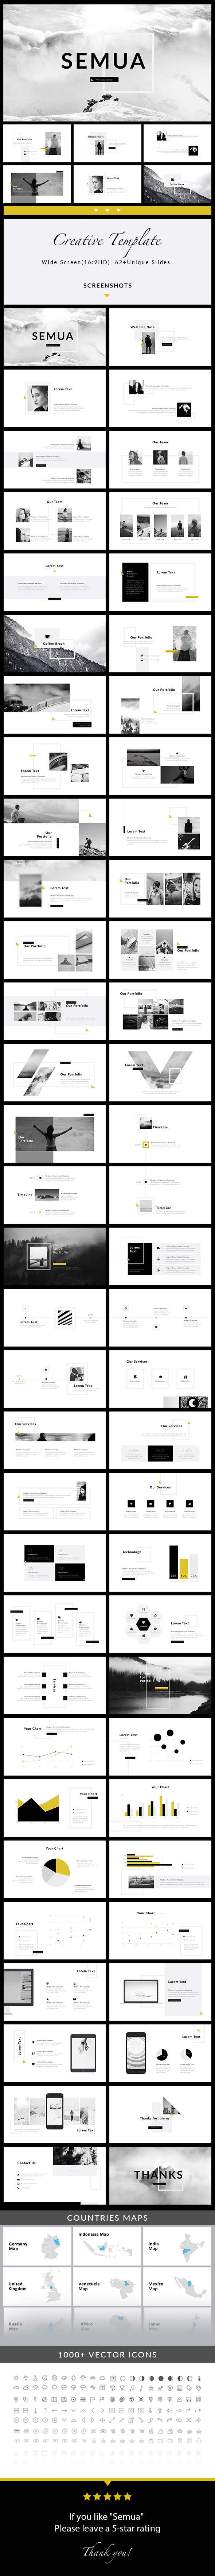 Semua - PowerPoint Presentation Template - Creative PowerPoint Templates